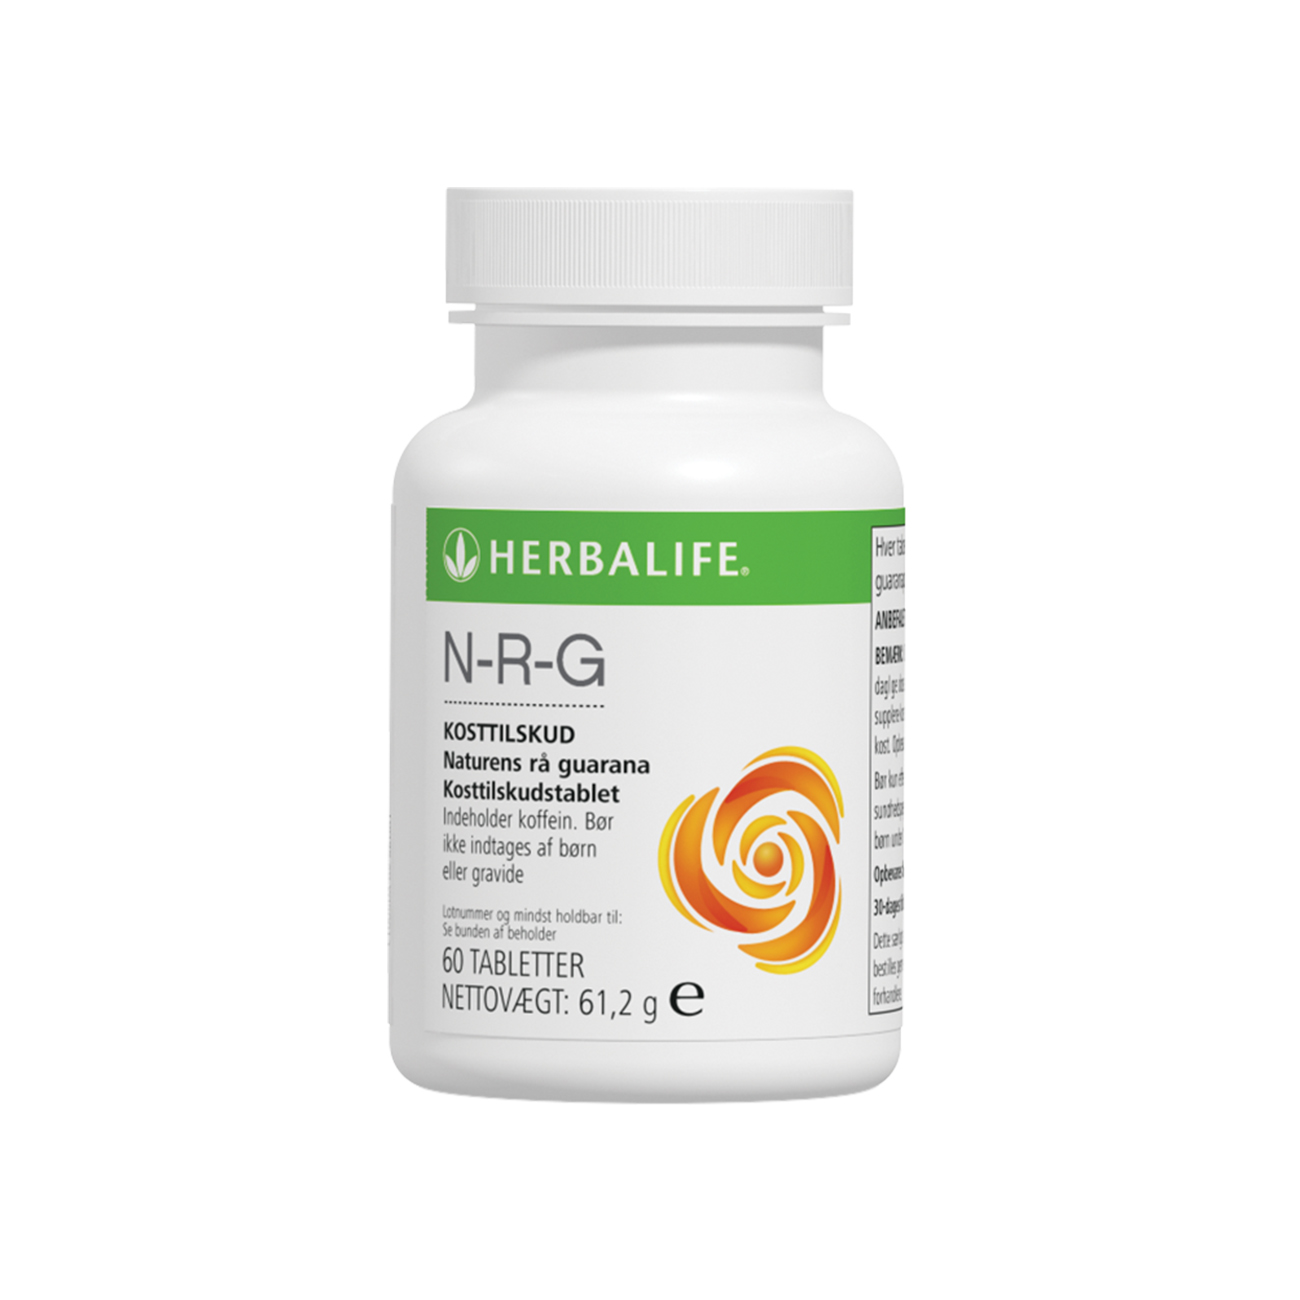 N-R-G Nature's Raw Guarana Koffeintilskud product